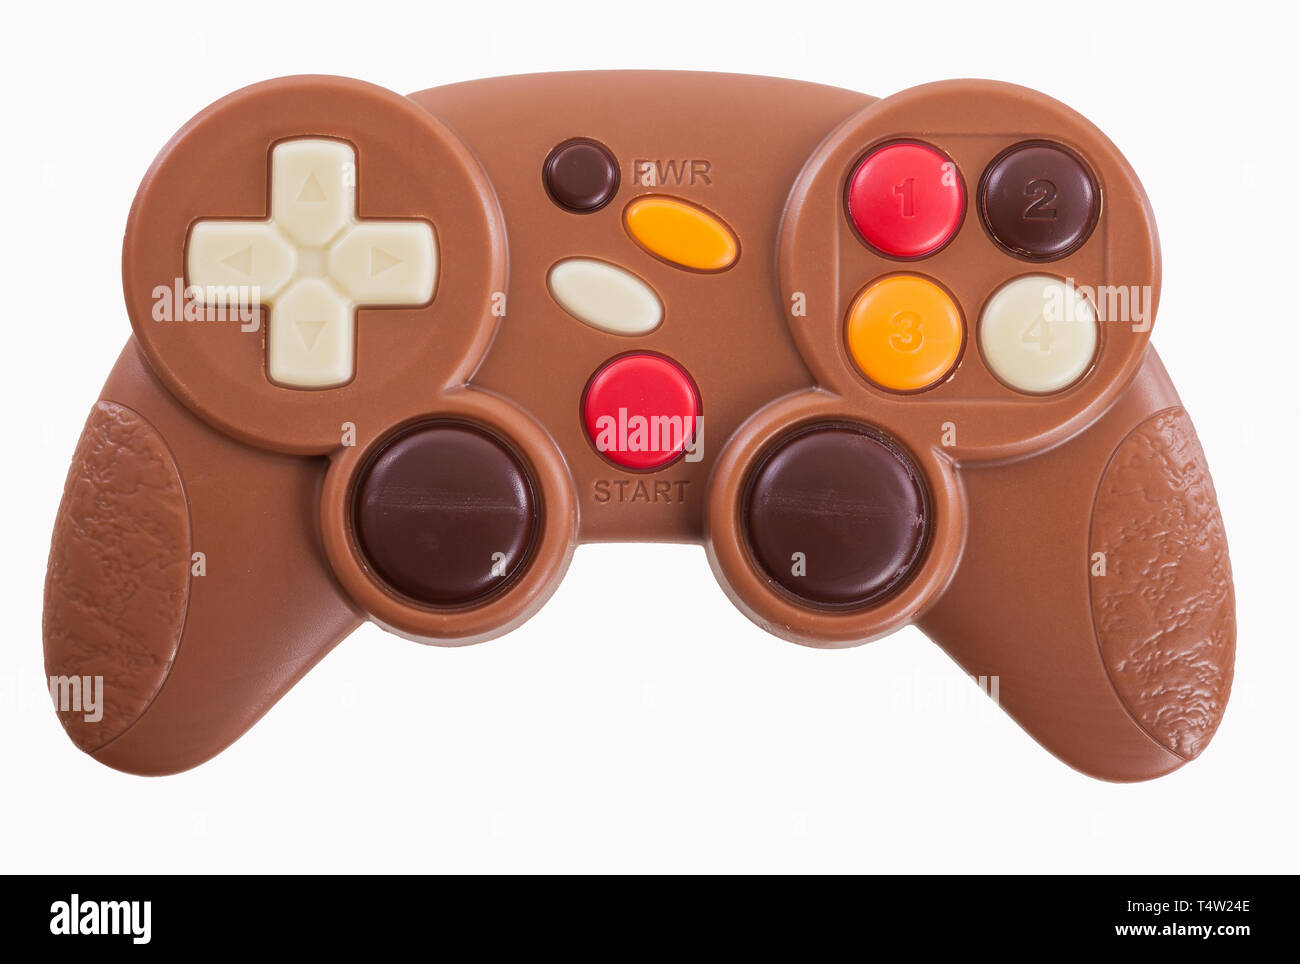 Video game controller made of chocolate - Stock Image